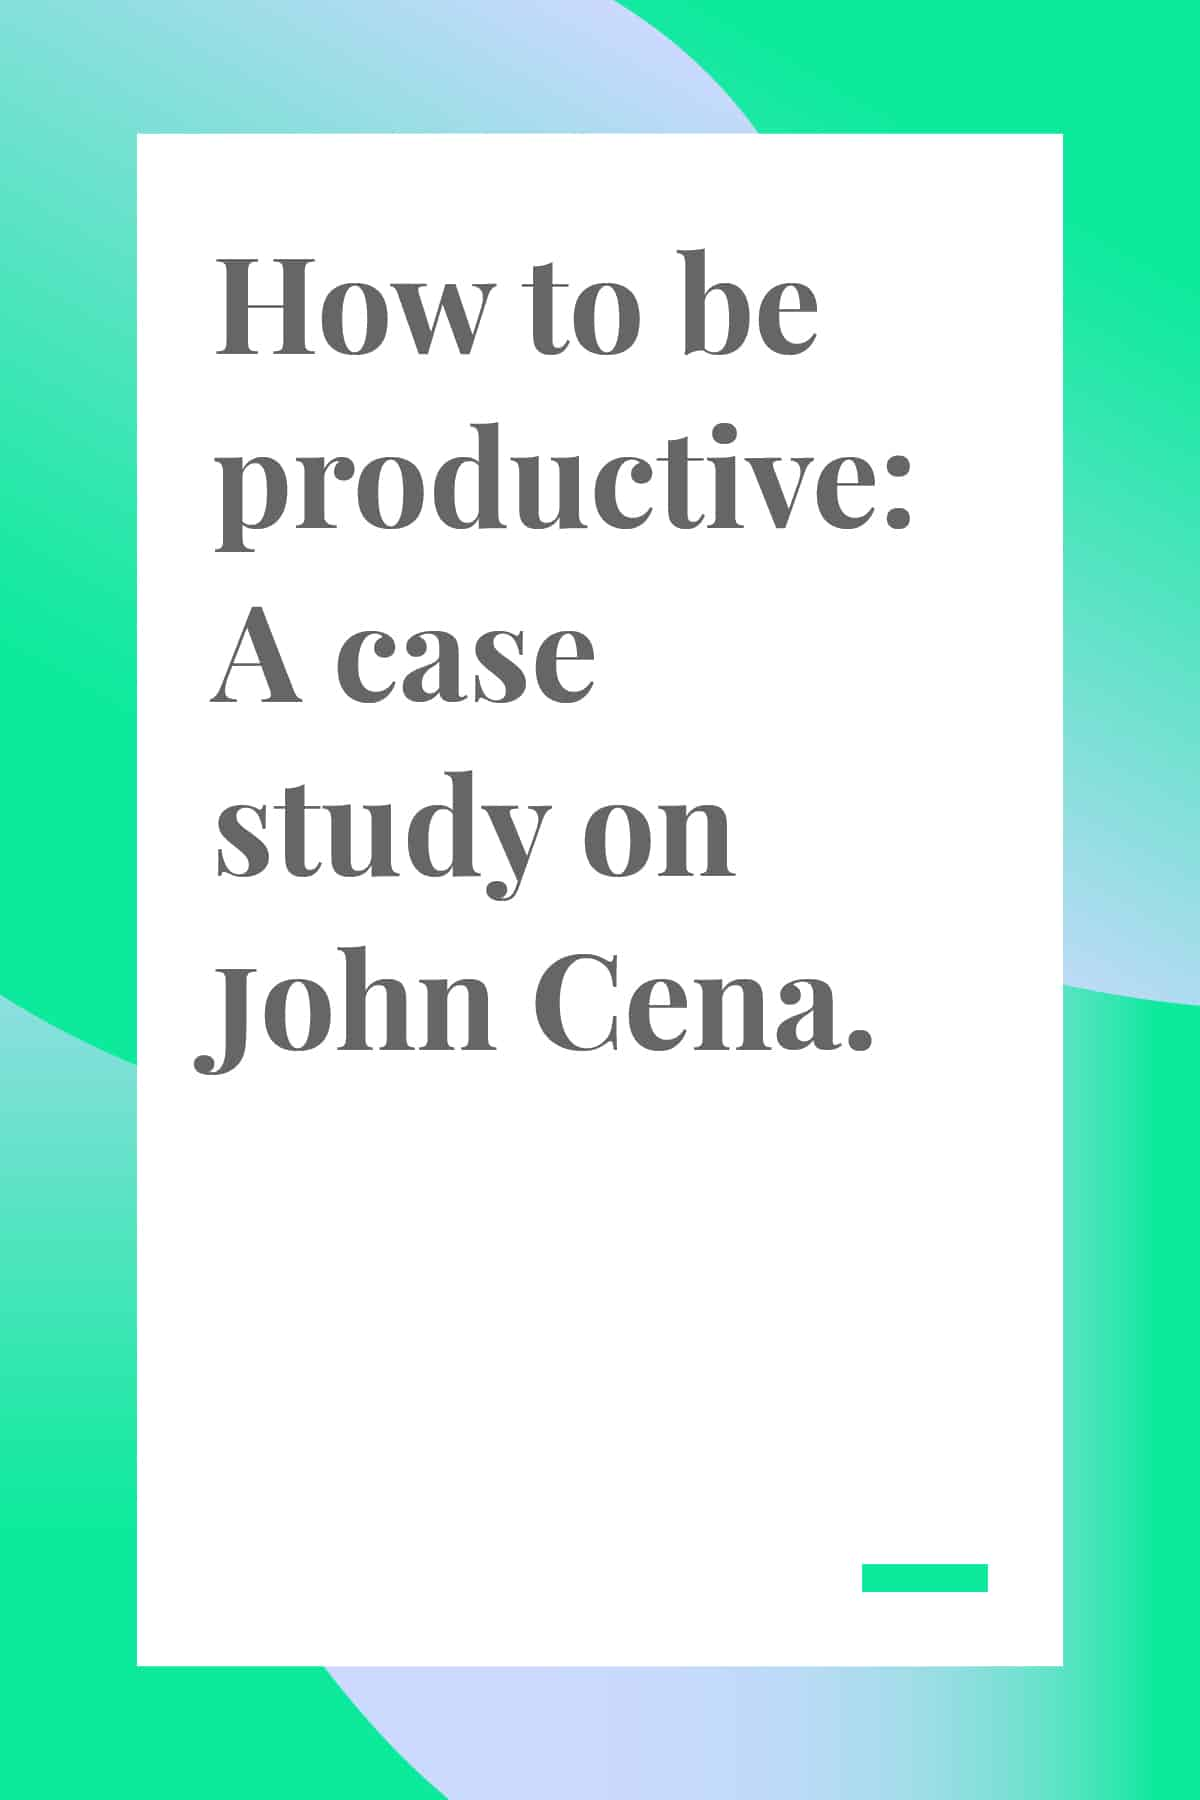 Learn how to be productive with these tips from actor and WWE star John Cena. #productivity